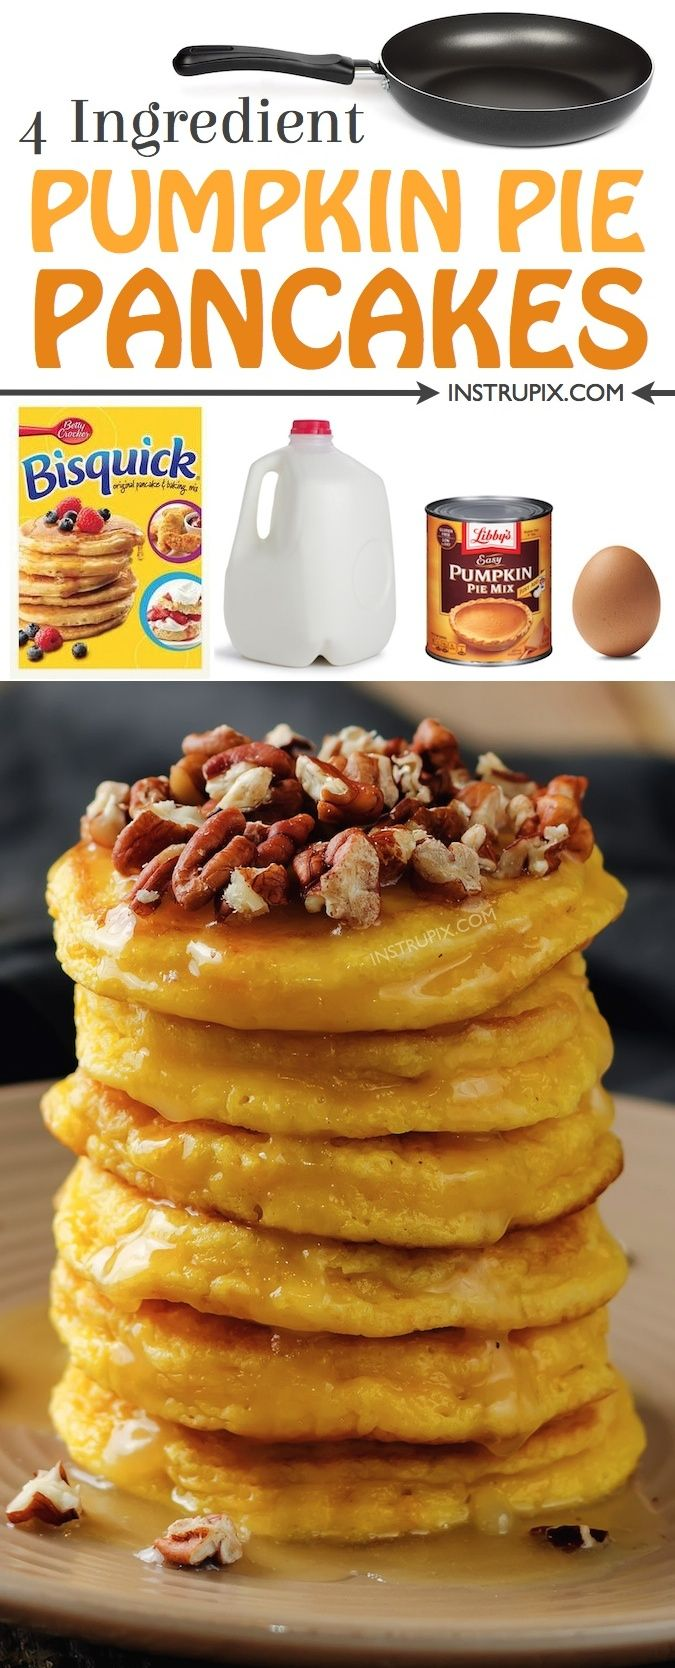 Easy pumpkin pie pancakes made with just 4 ingredients! These pumpkin spice pancakes are AMAZING! Made with bisquick, pumpkin pie filing, milk and an egg. The perfect fall breakfast idea! Instrupix.com